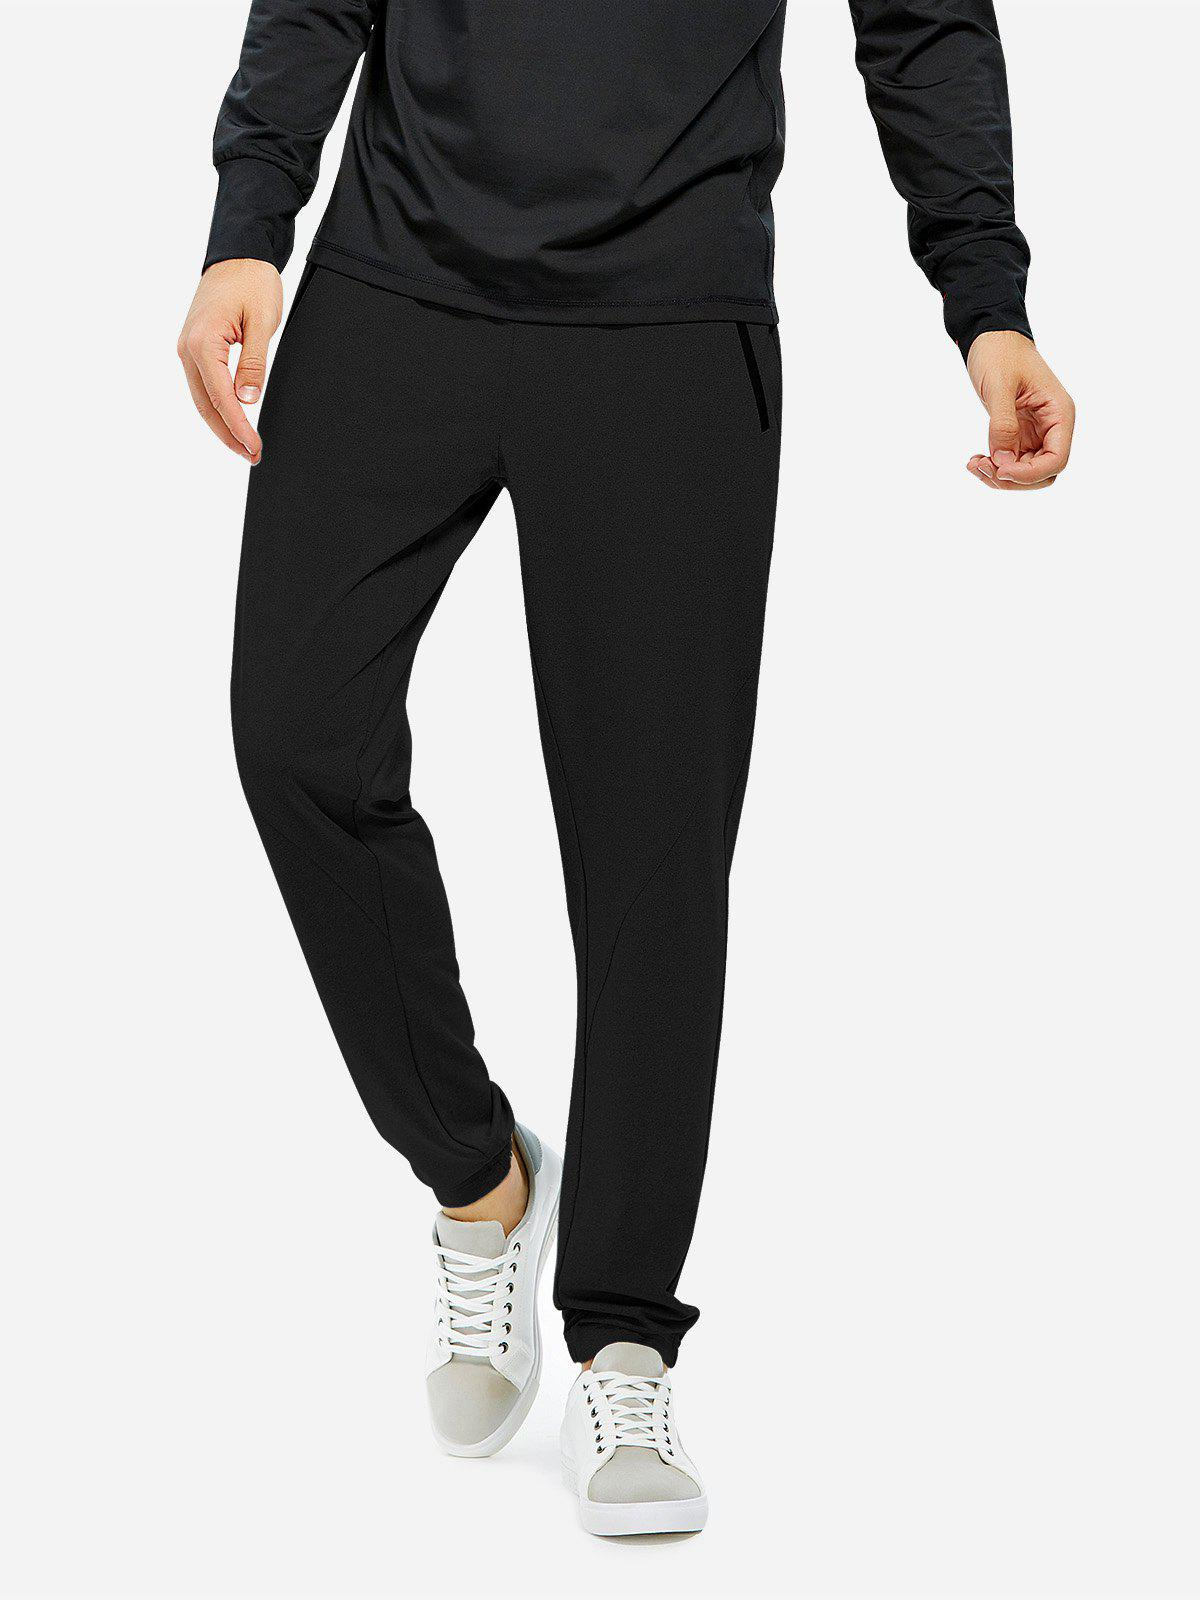 ZAN.STYLE Men Joggers Sweatpants with Zip Pocket - BLACK 2XL